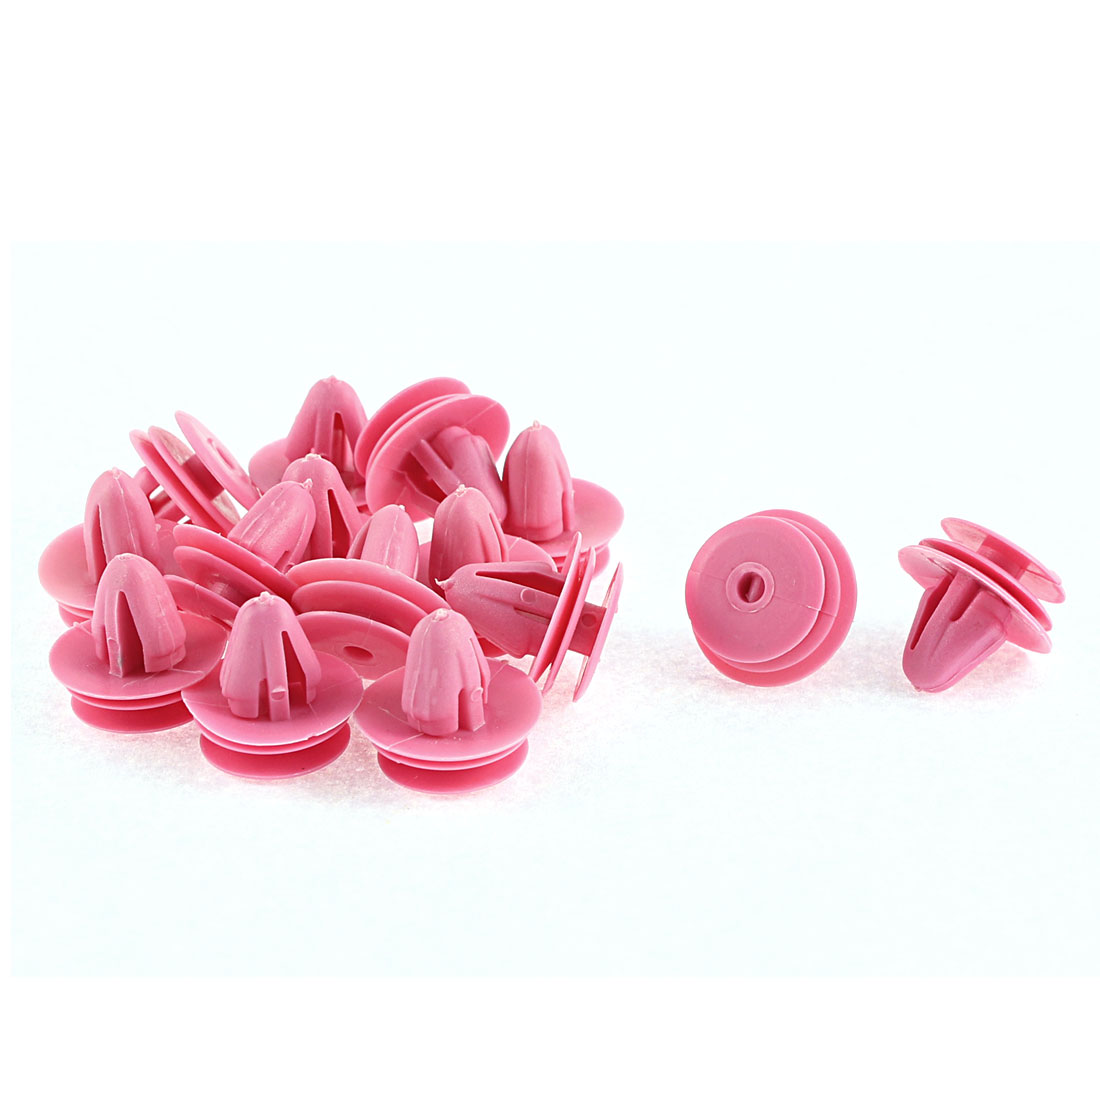 15 Pcs 10mm x 7.5mm Hole Fuchsia Plastic Rivets Fastener Push Clips for Hyundai Elantra